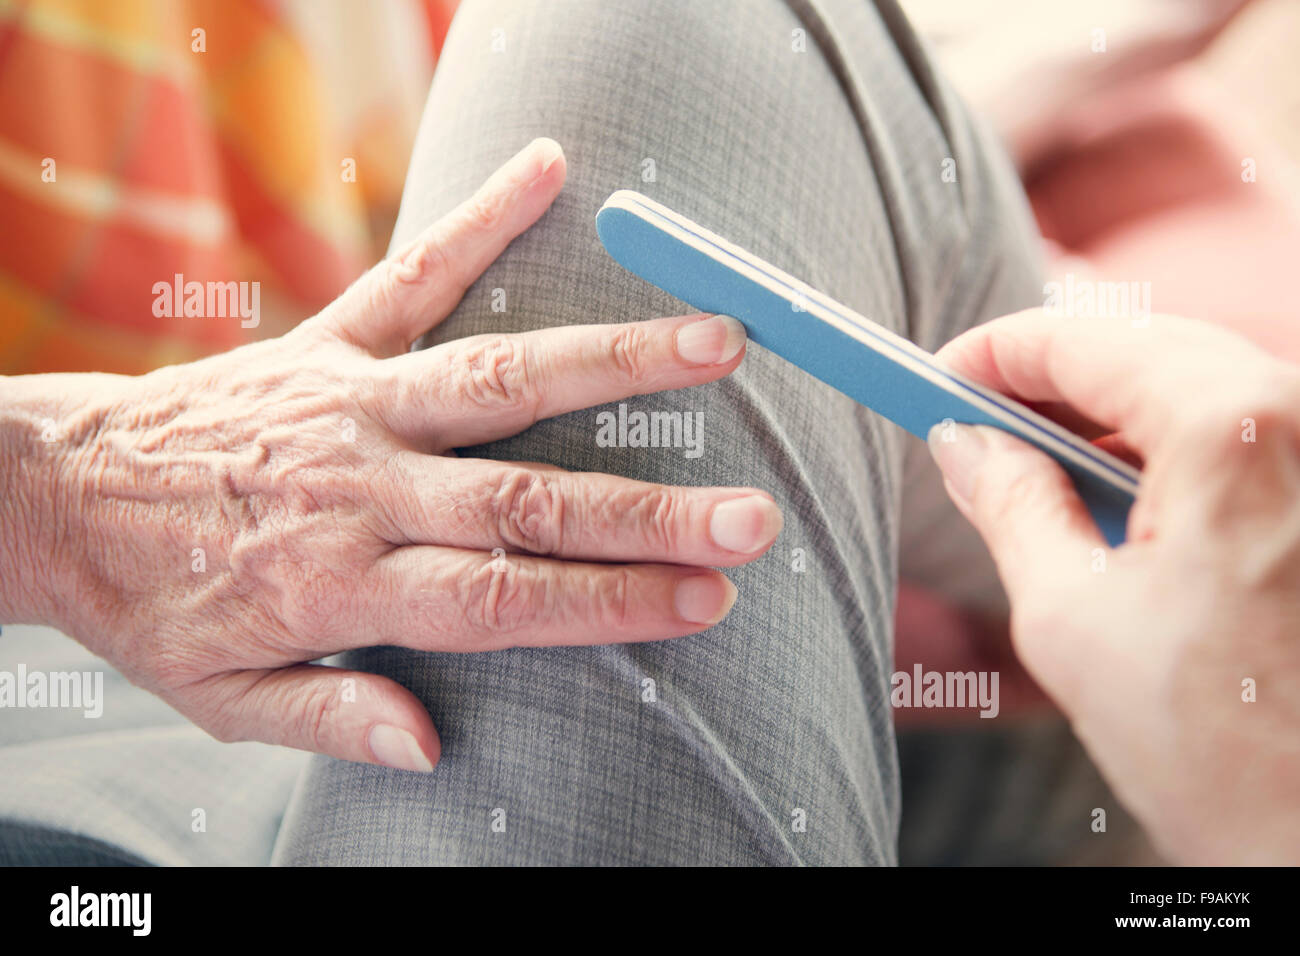 closeup of an older woman's hand with nailfile - Stock Image